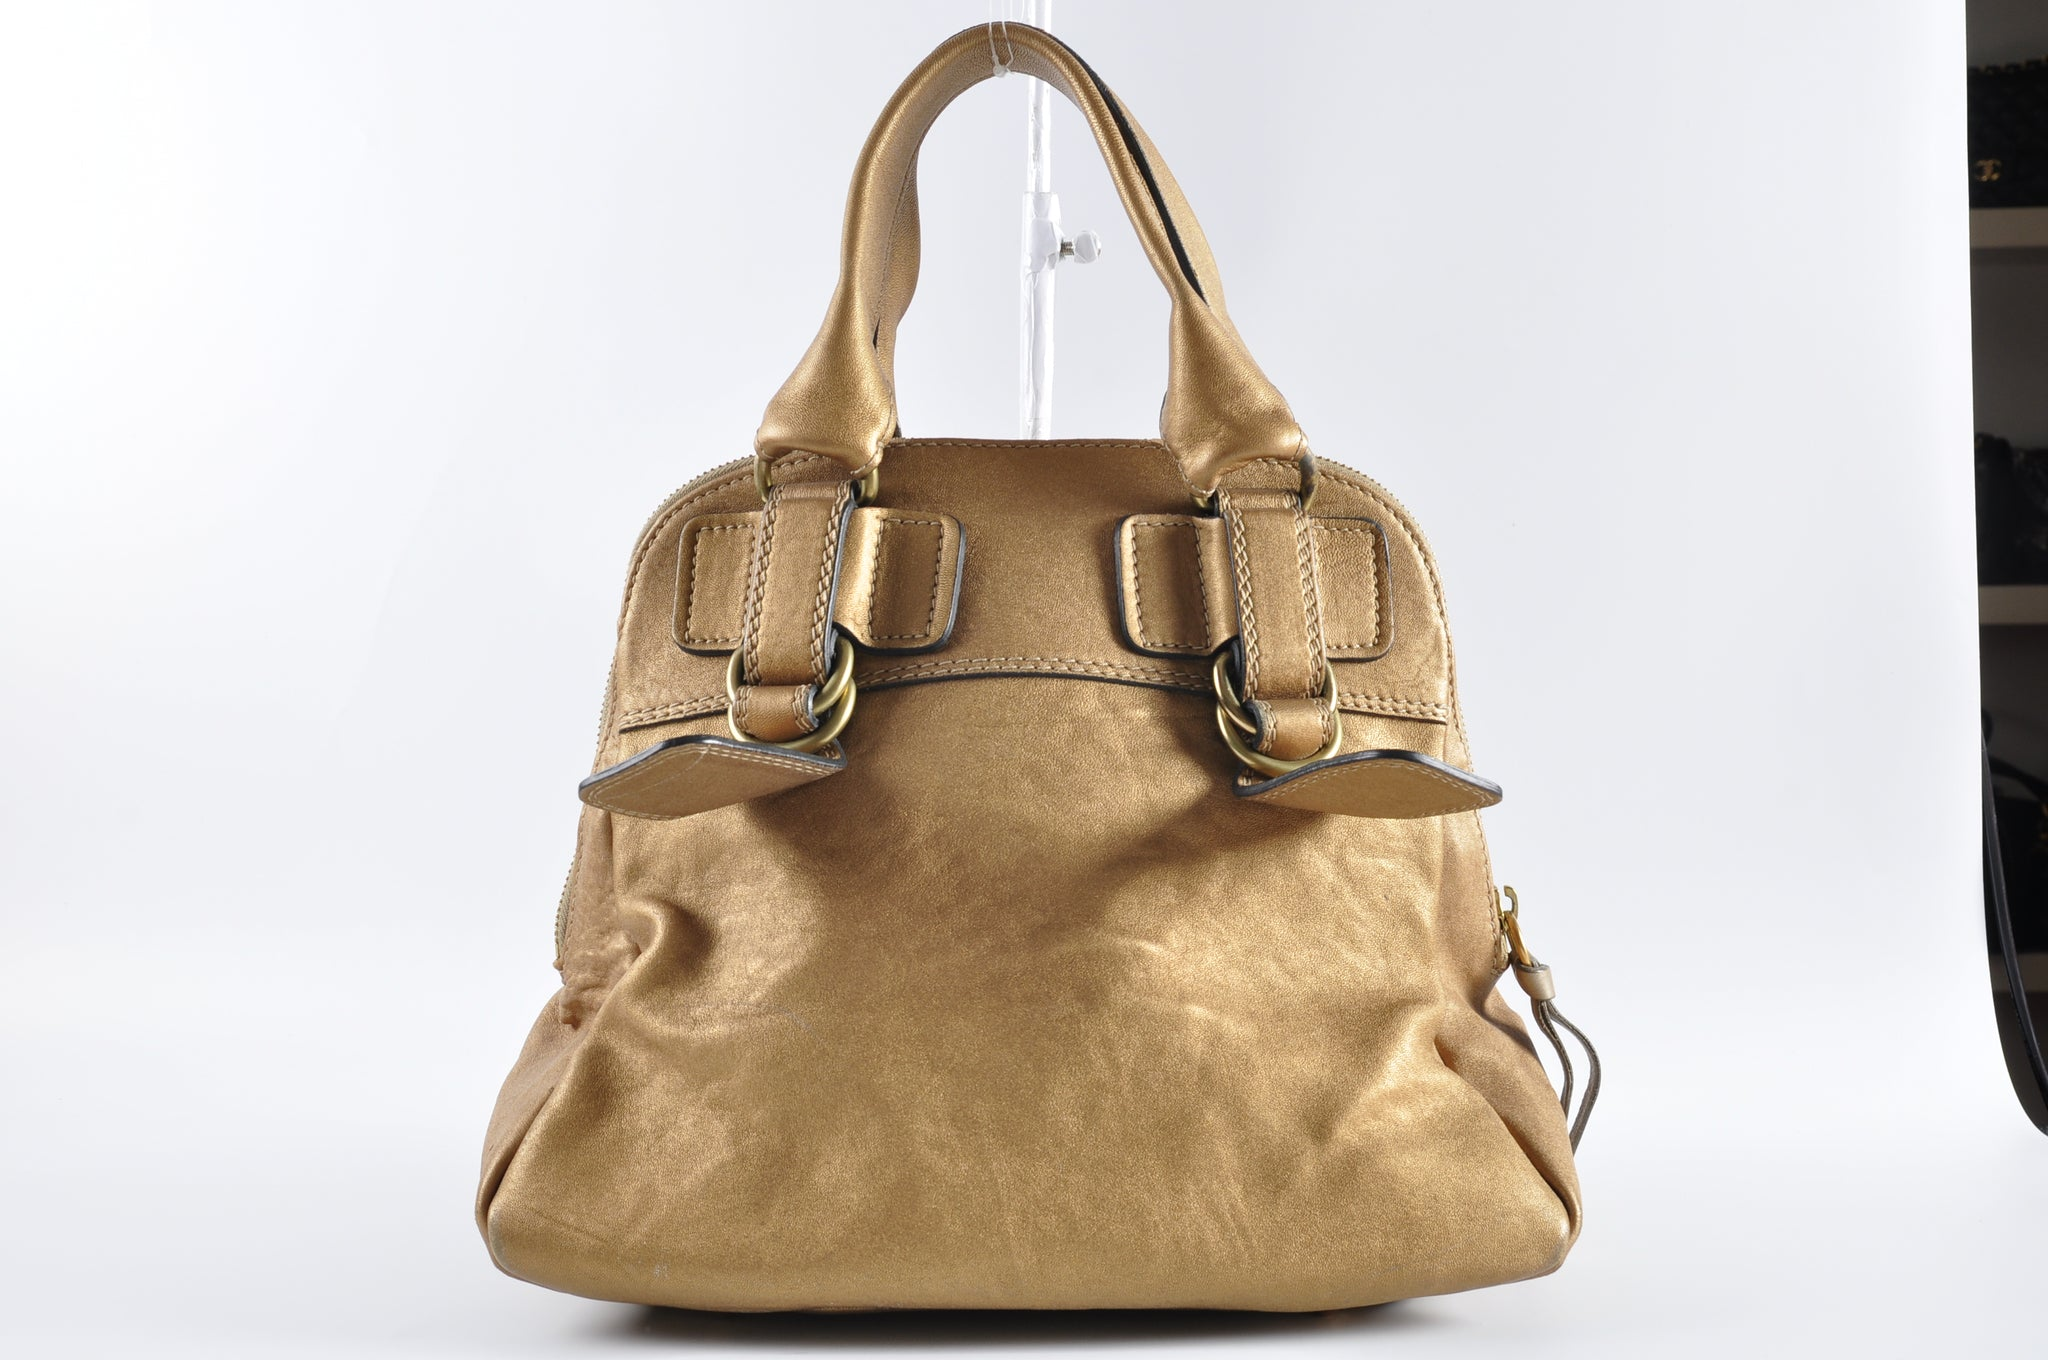 Chloe Metallic Gold Bay Bag - Glampot